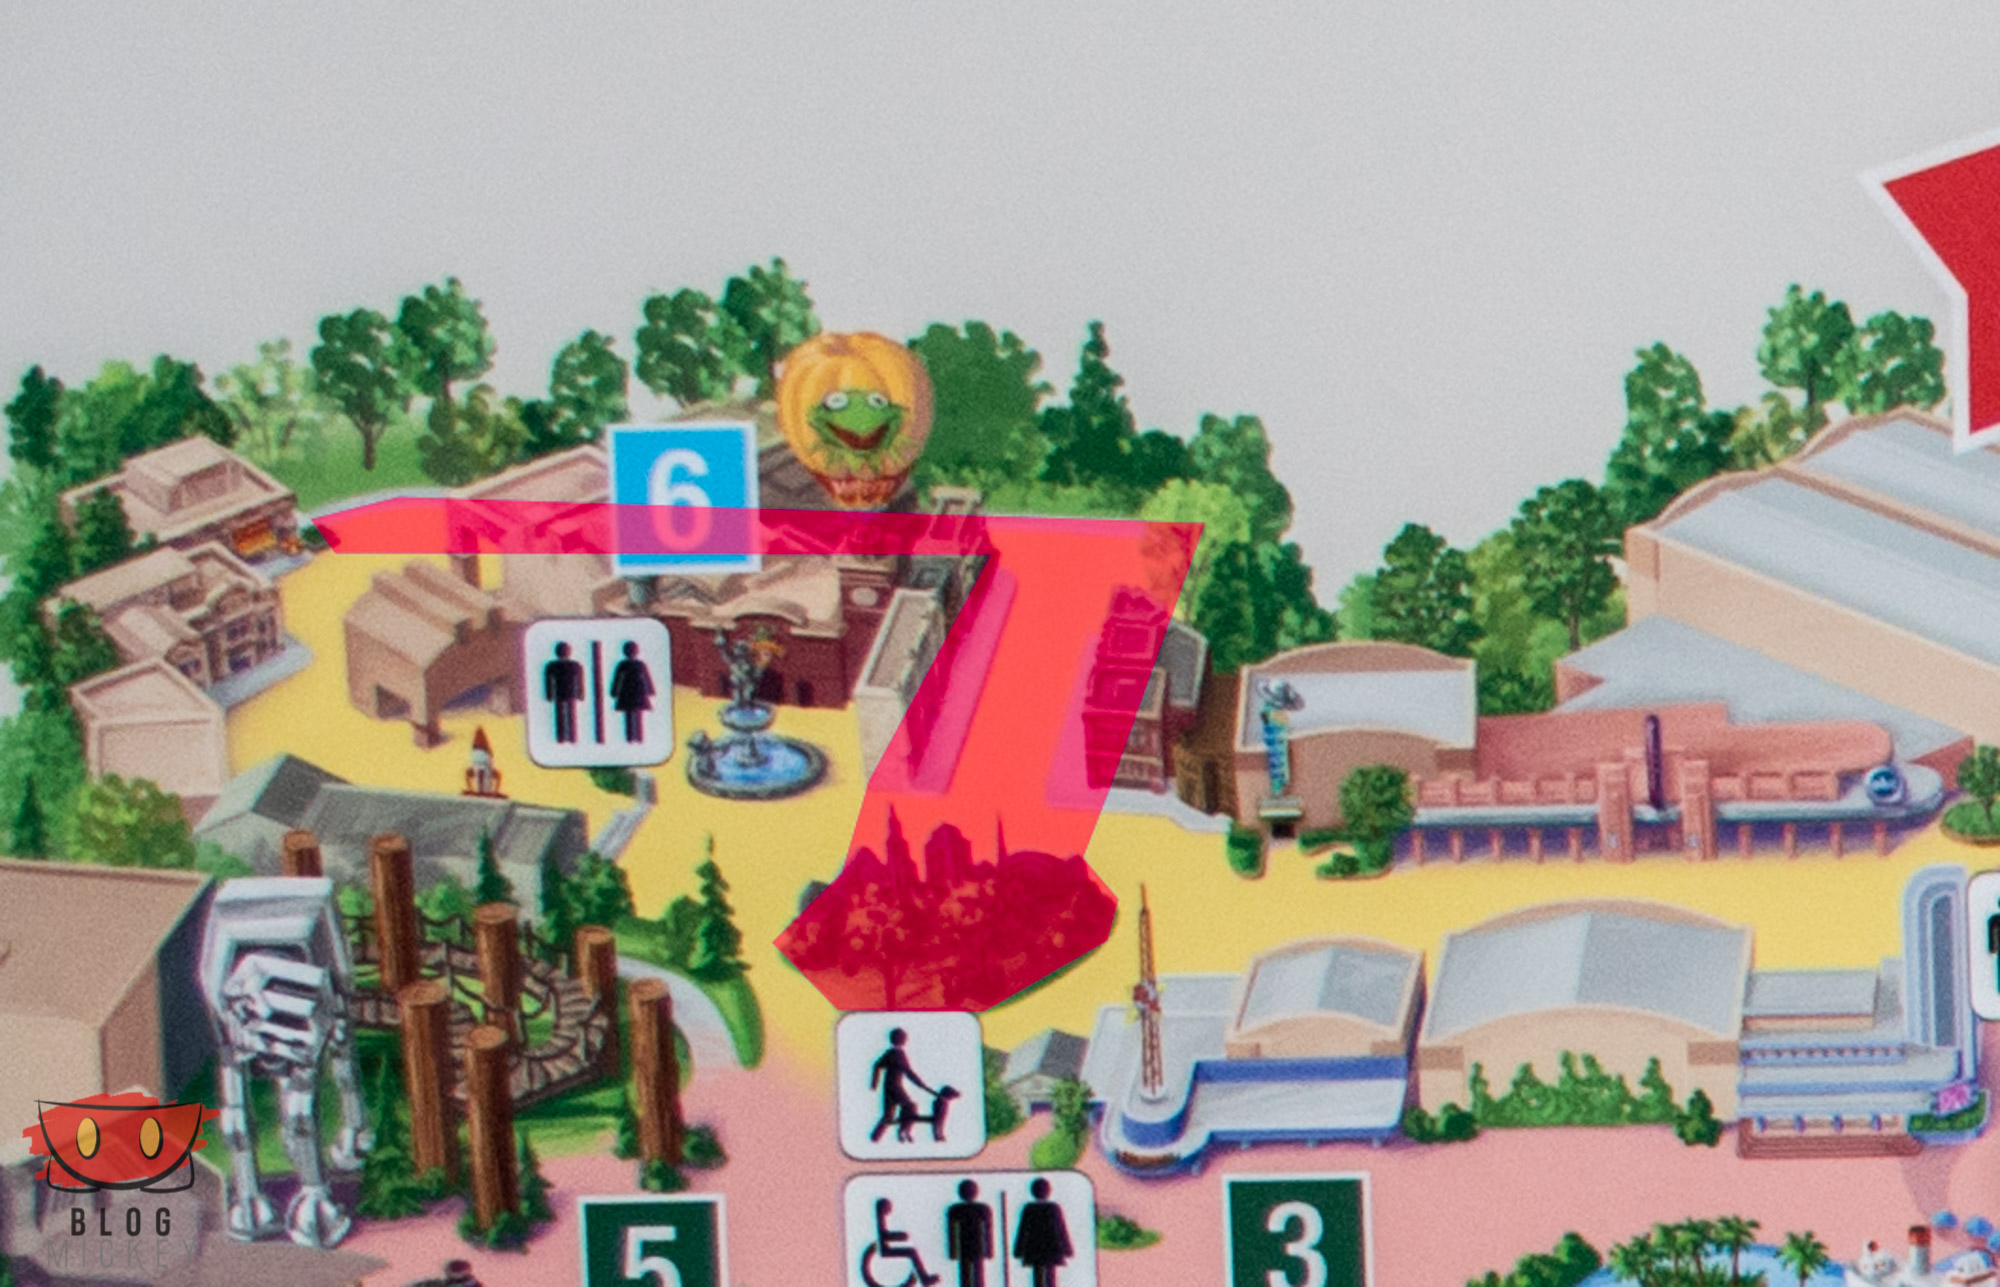 New in-park maps at Hollywood Studios - Blog Mickey